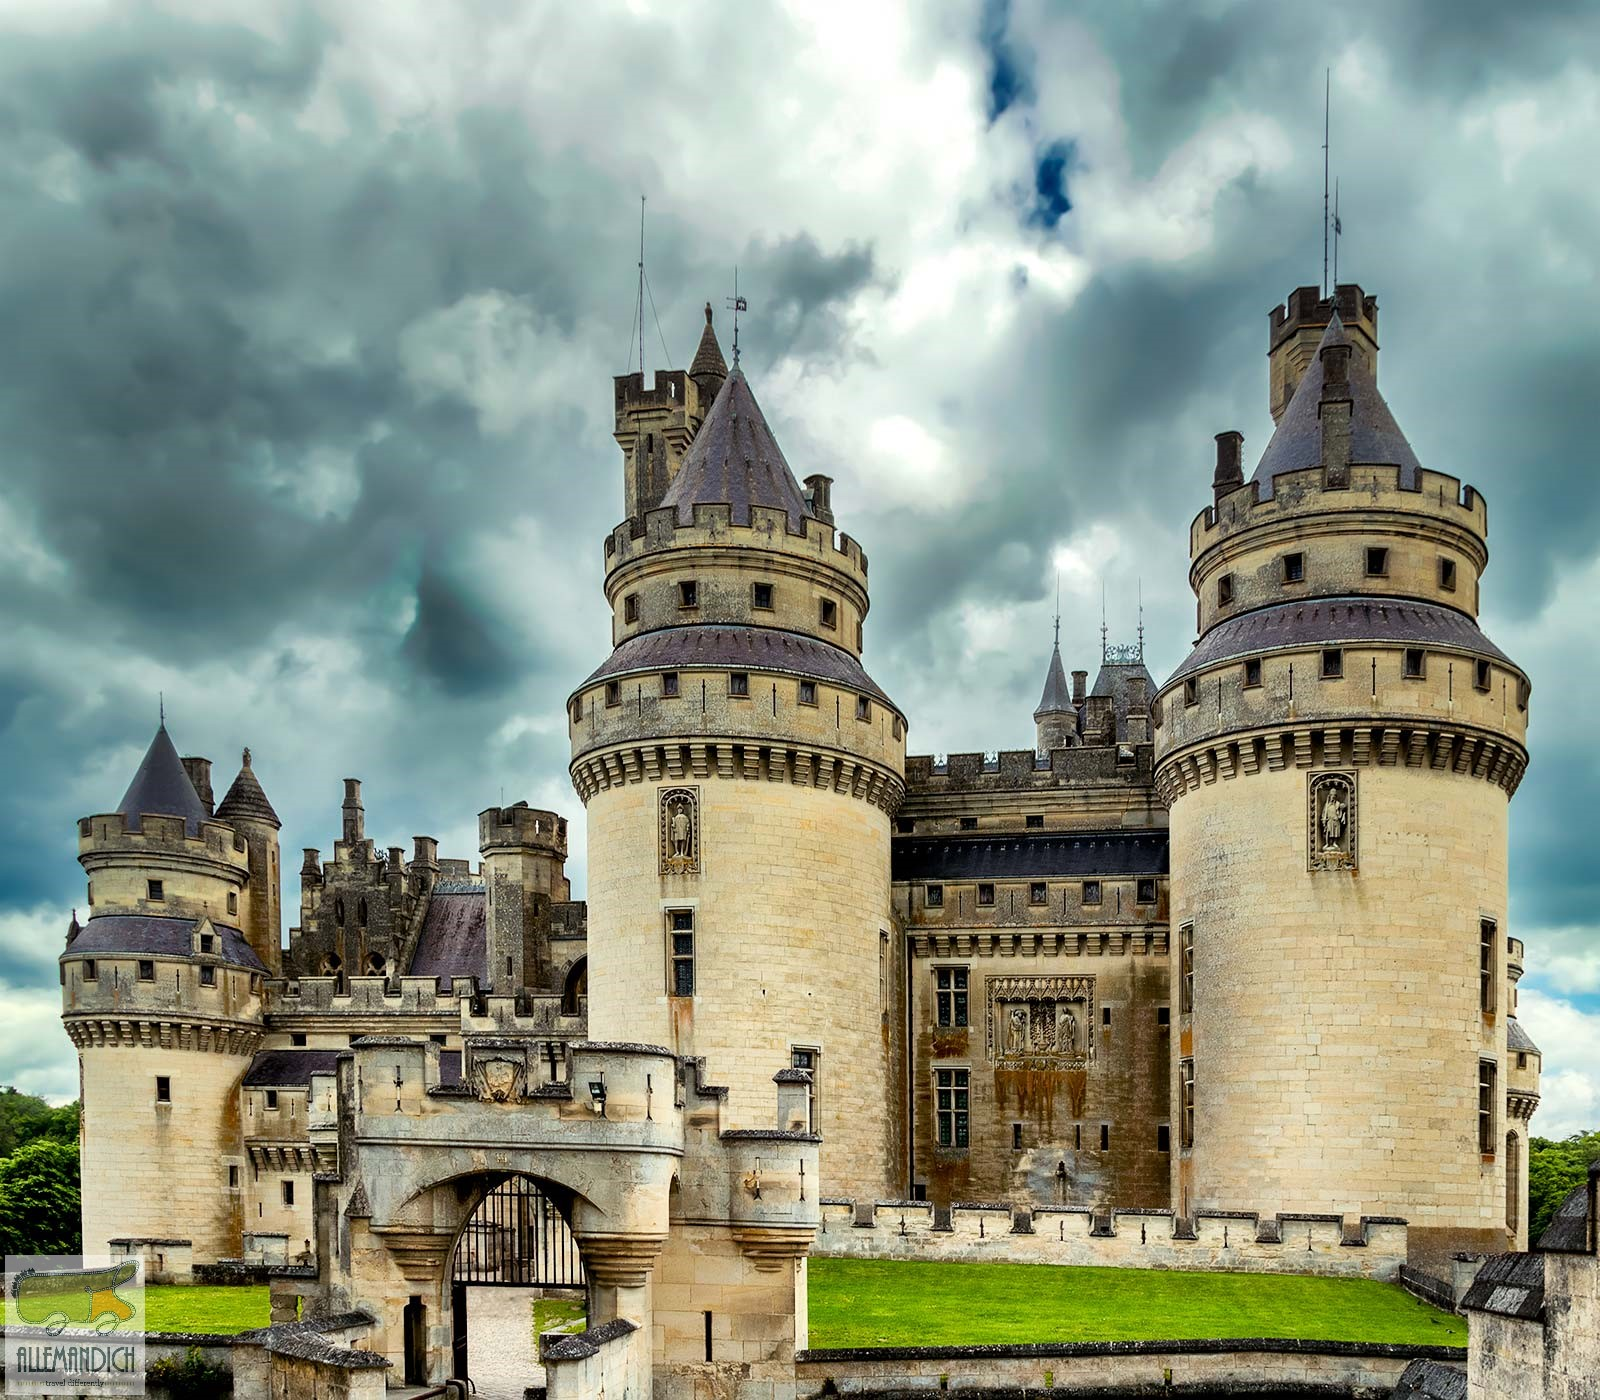 Pierrefonds hdr